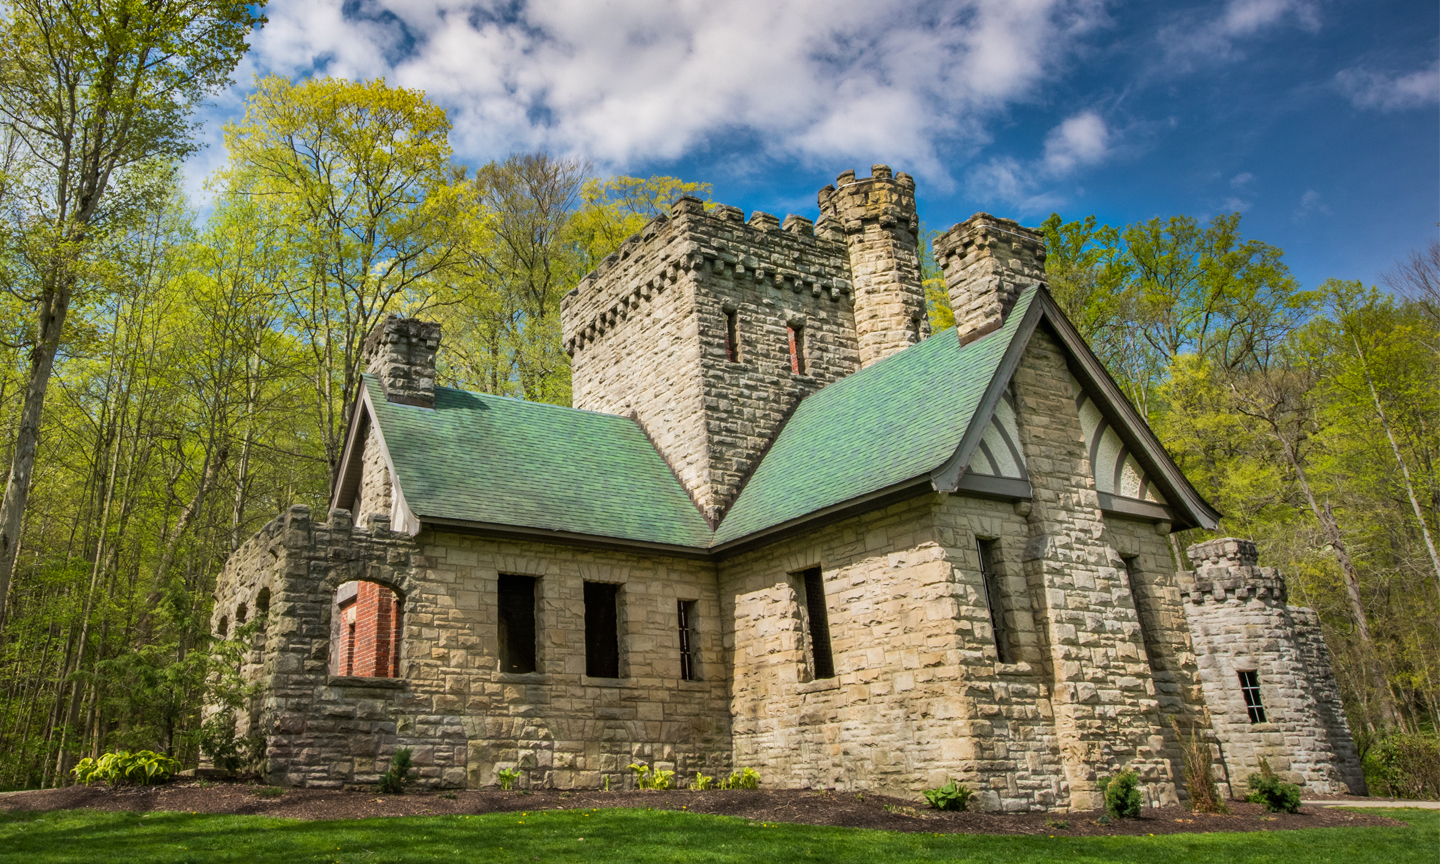 North Chagrin Reservation | Ohio Parks | Cleveland ...